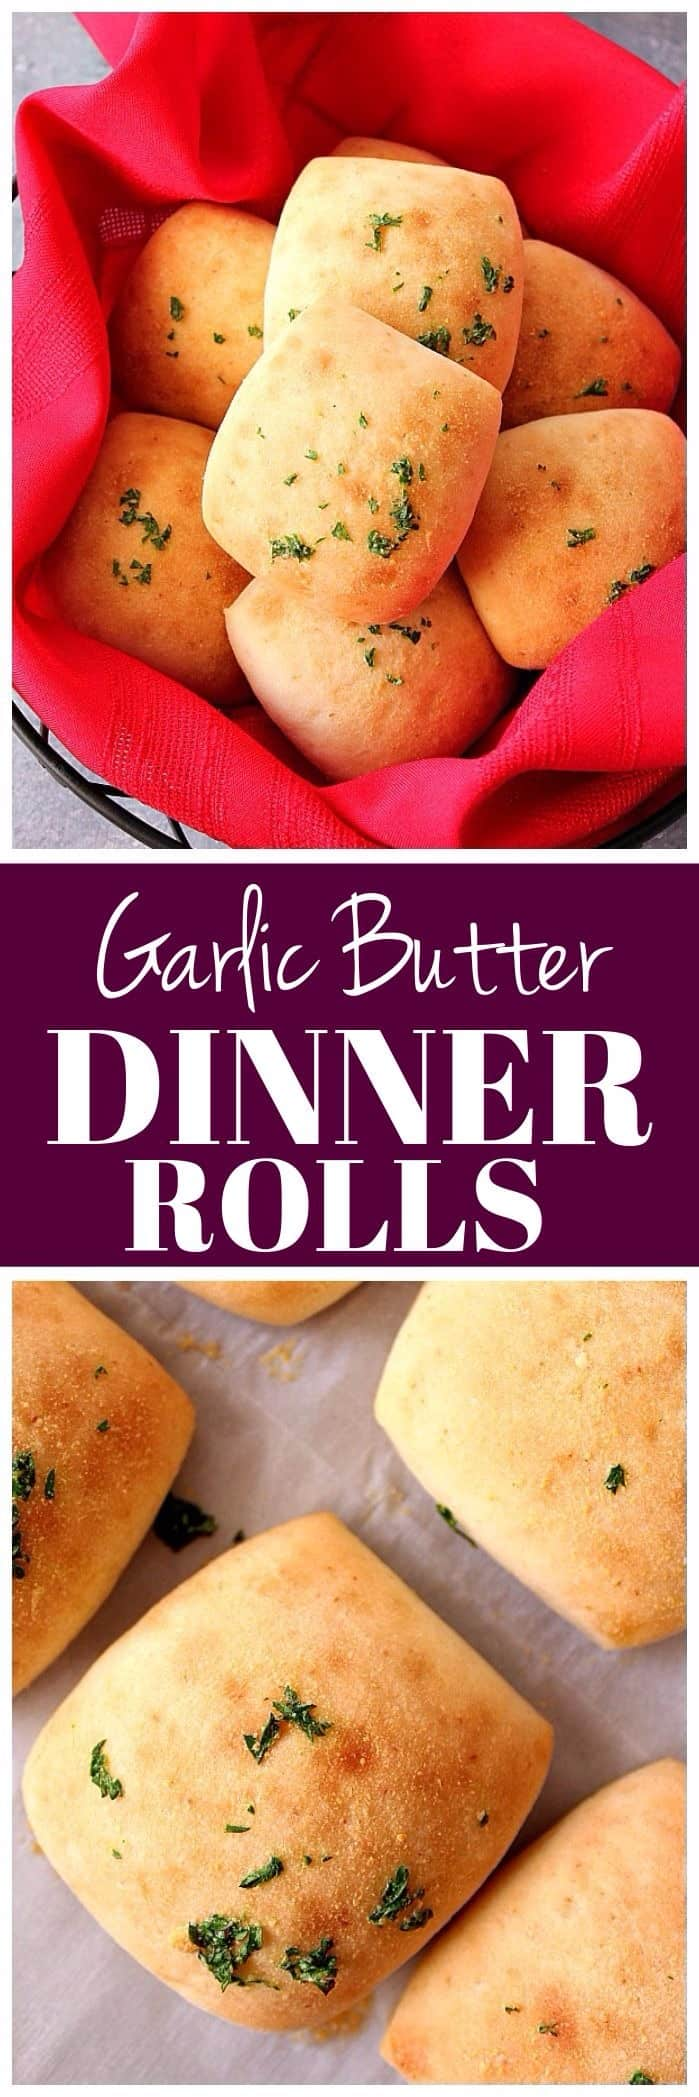 garlic butter dinner rolls recipe long1 Garlic Butter Dinner Rolls Recipe